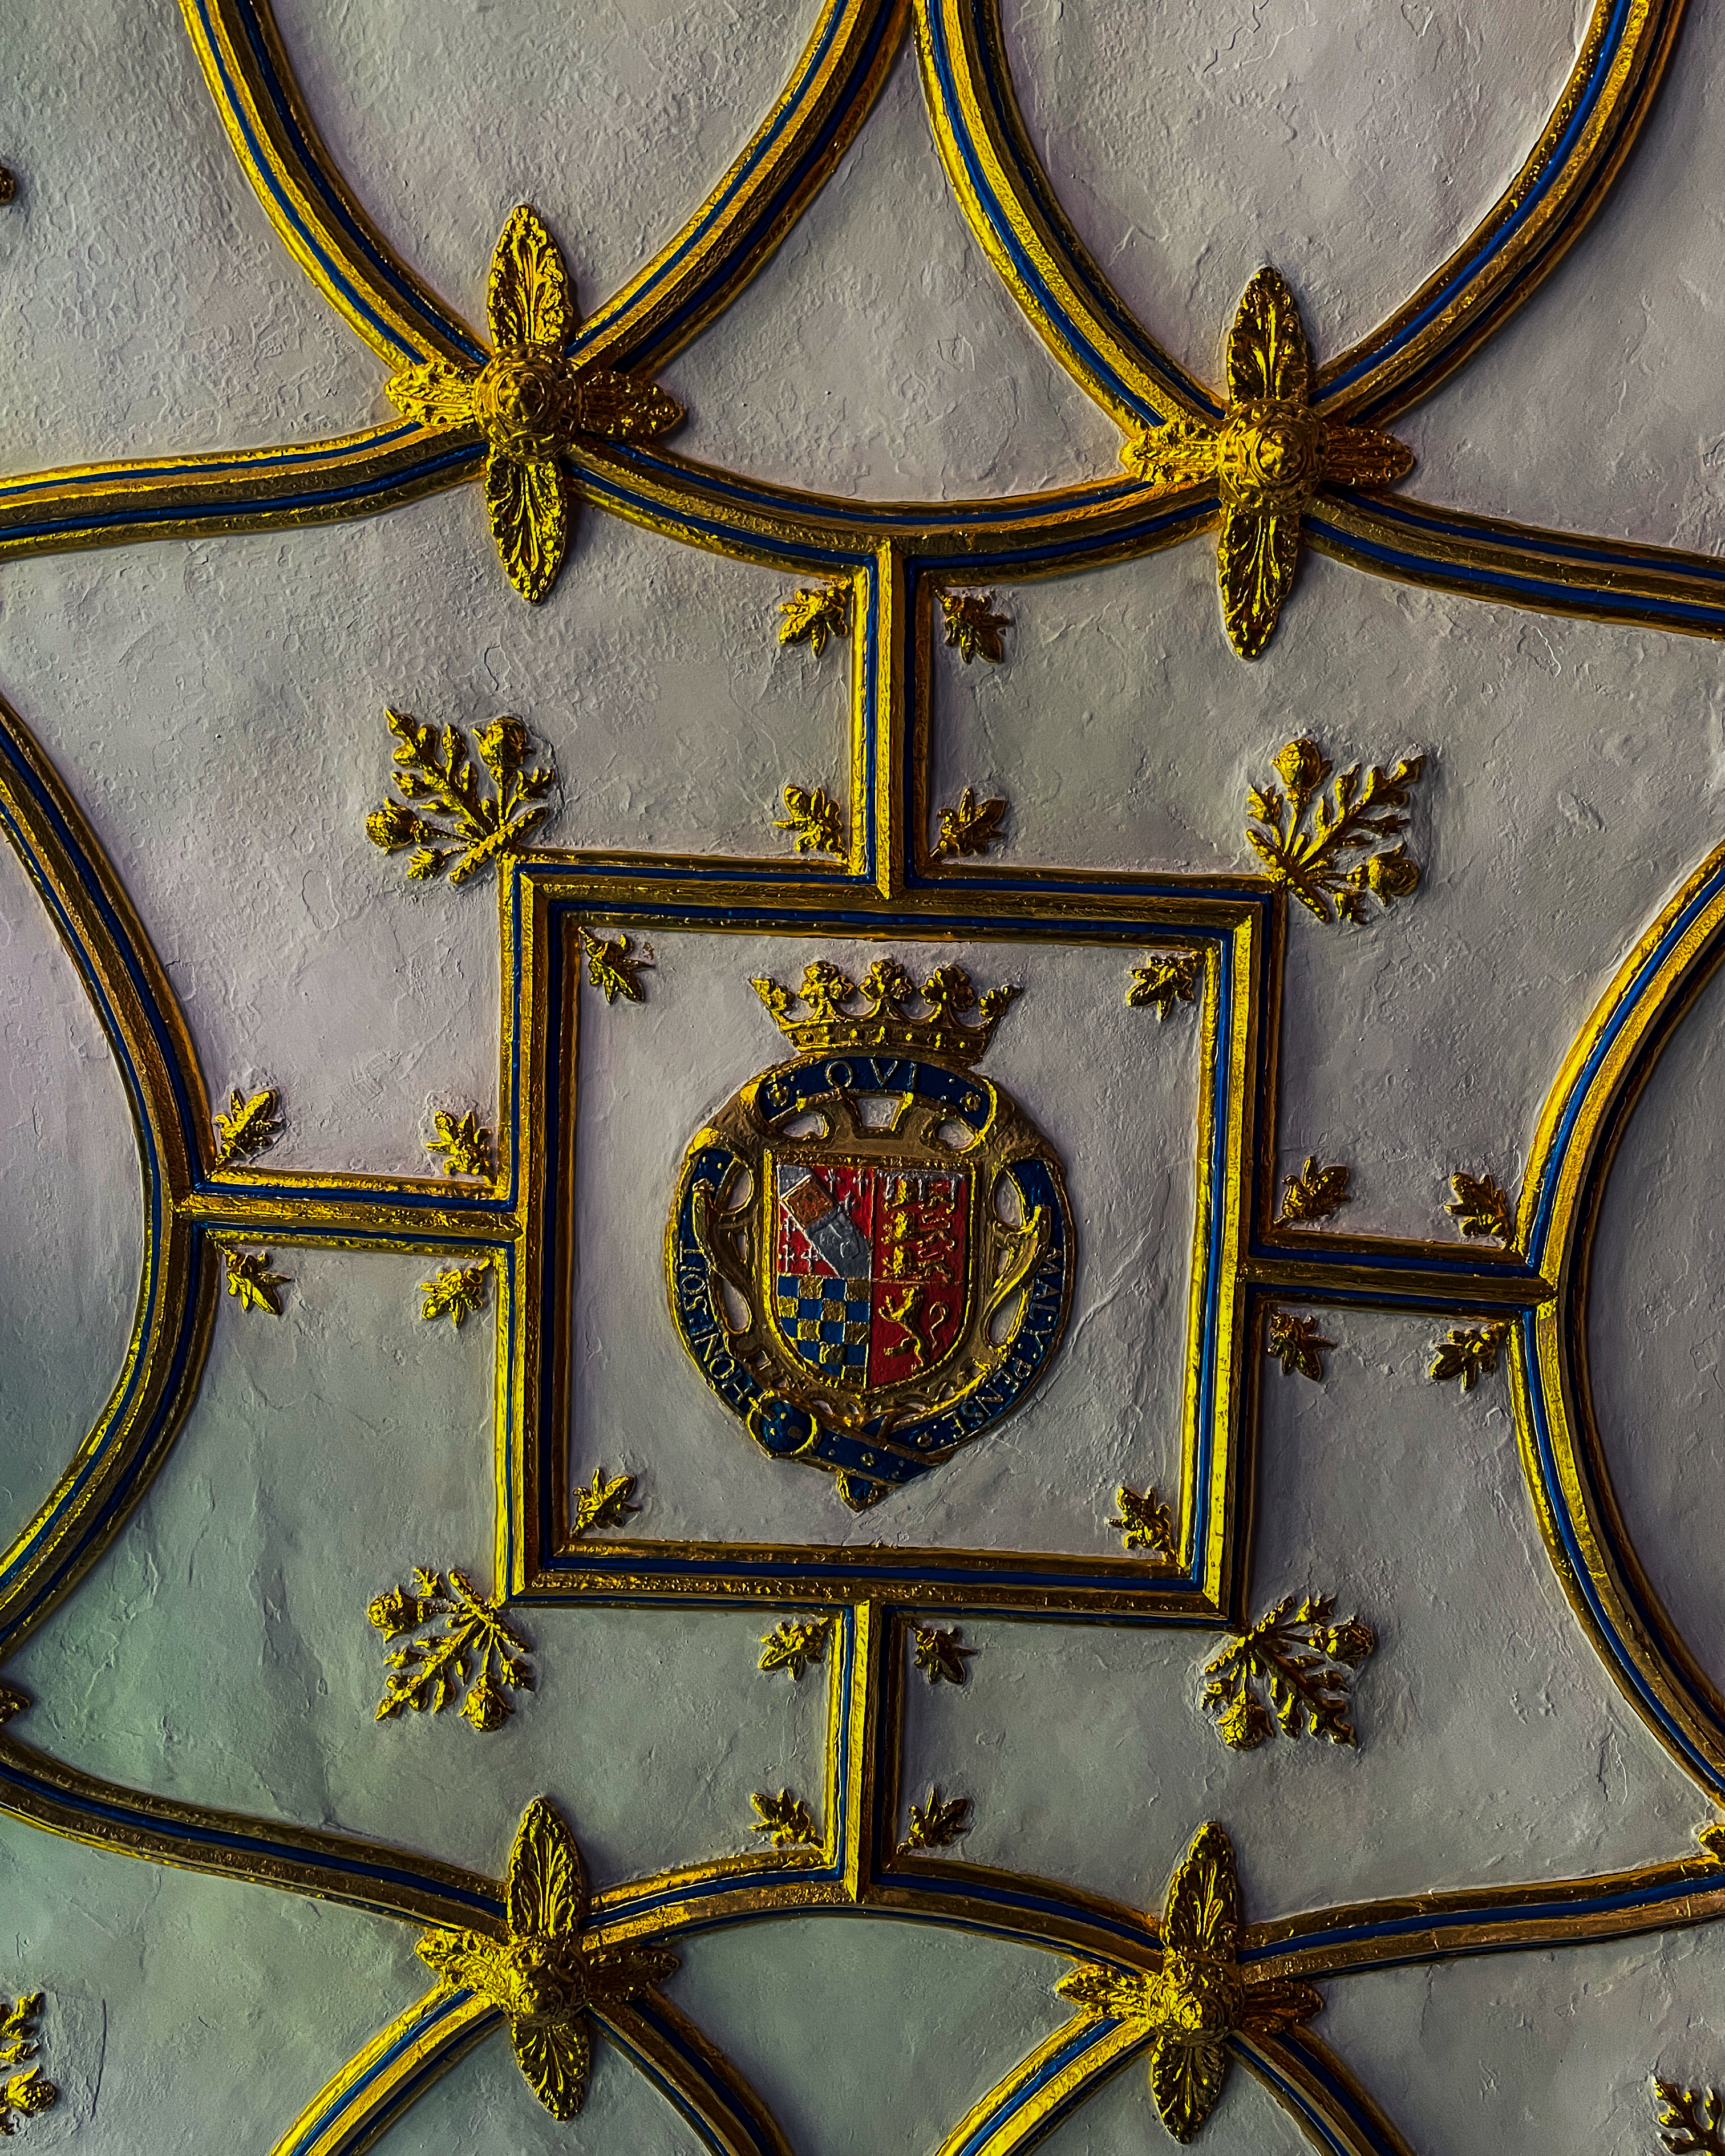 Image of a Tudor ceiling at the Charterhouse